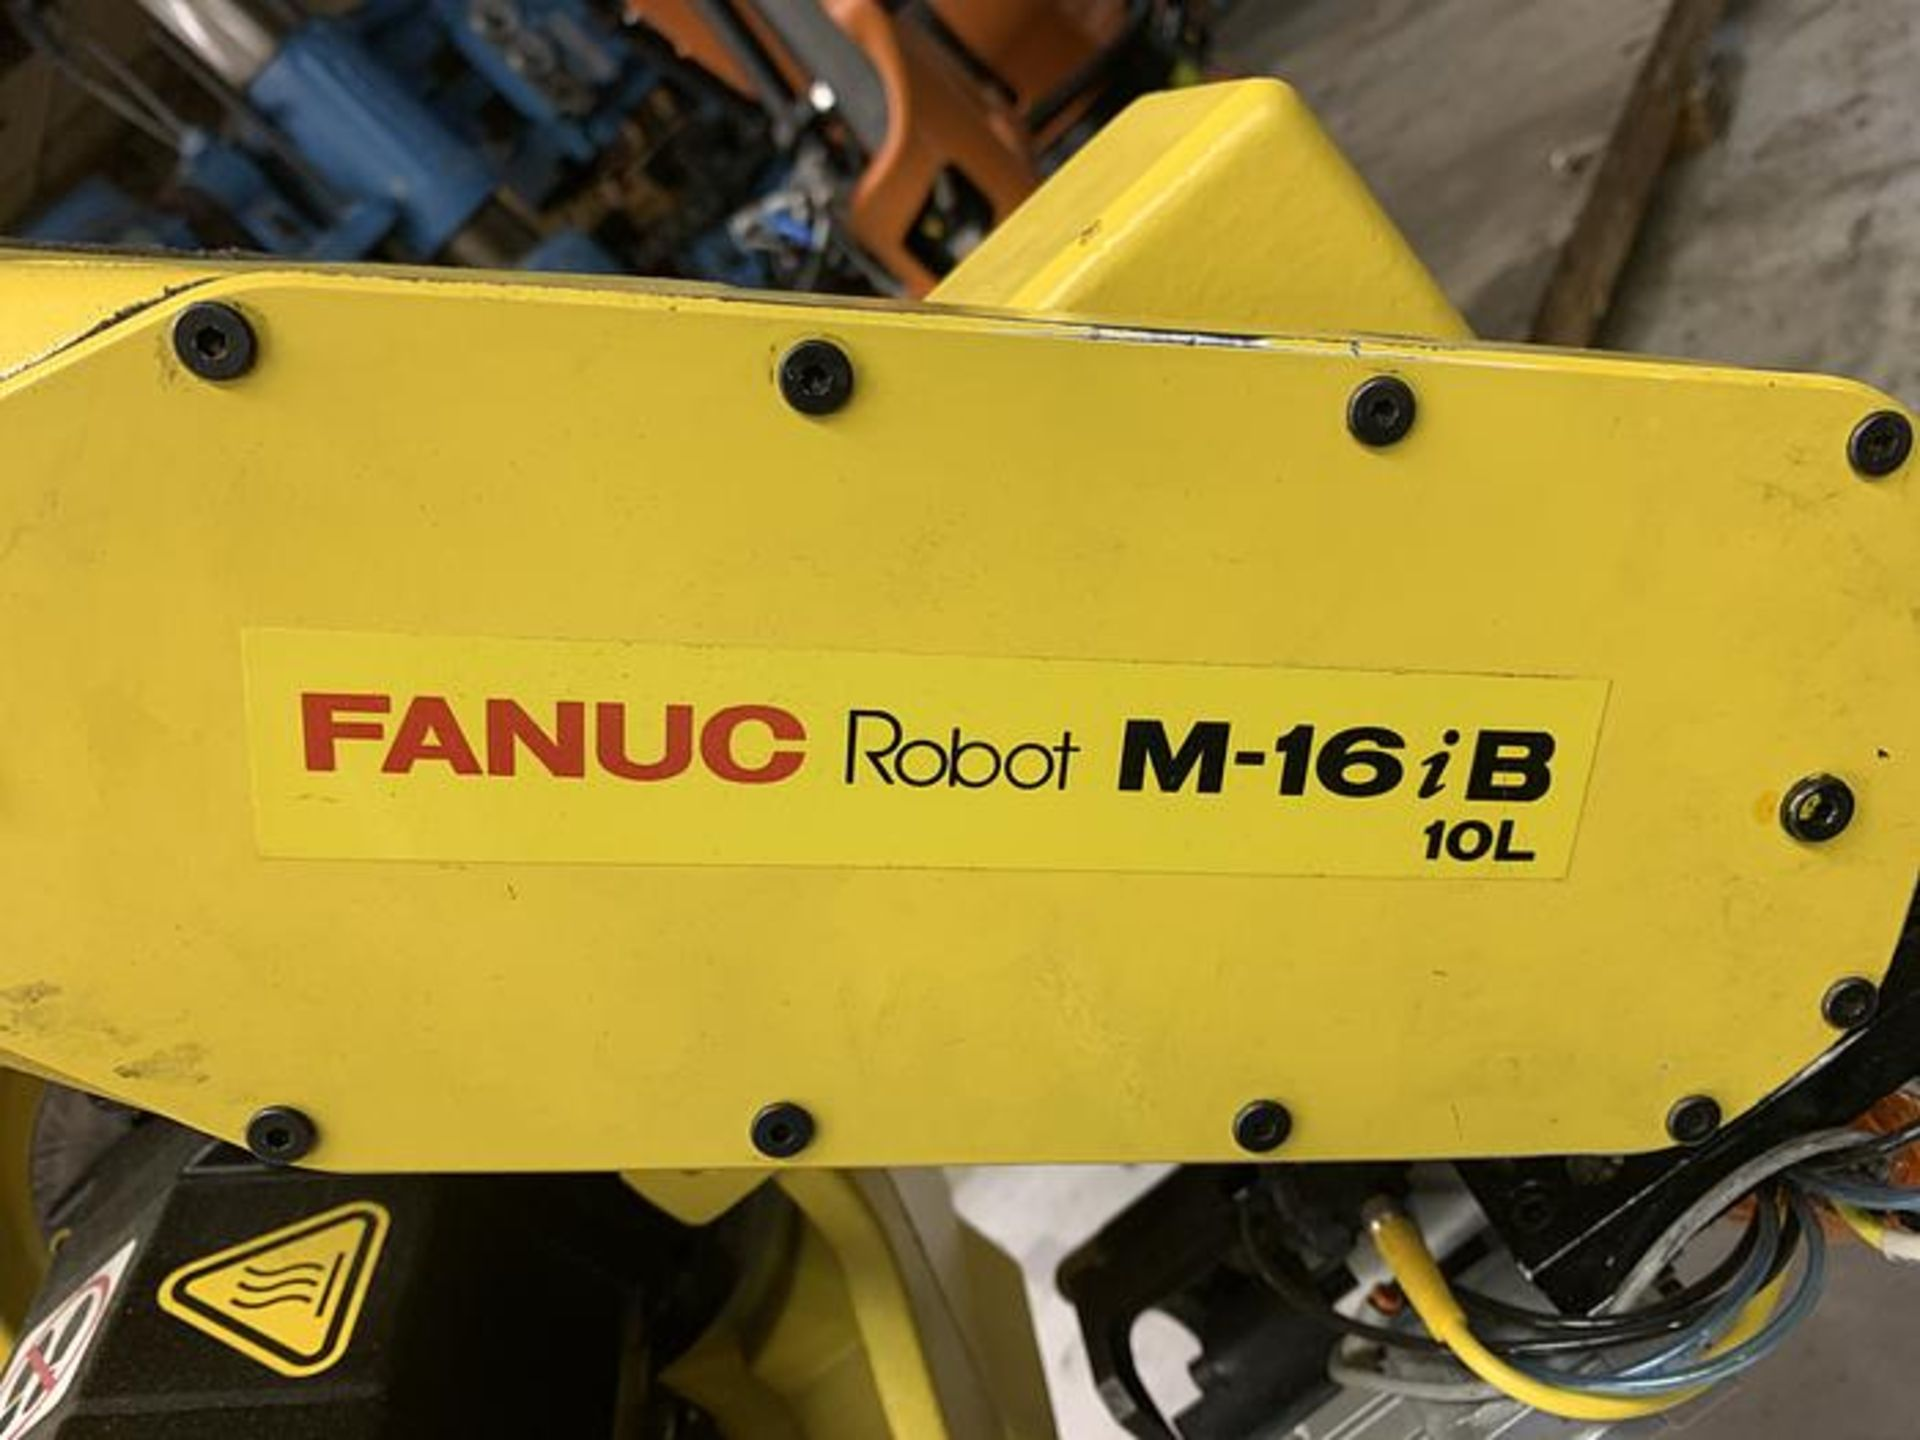 FANUC ROBOT M16iB/10L WITH RJ3iC (R30iA) CONTROLLER, TEACH & CABLES, YEAR 2006, SN 80306 - Image 4 of 17